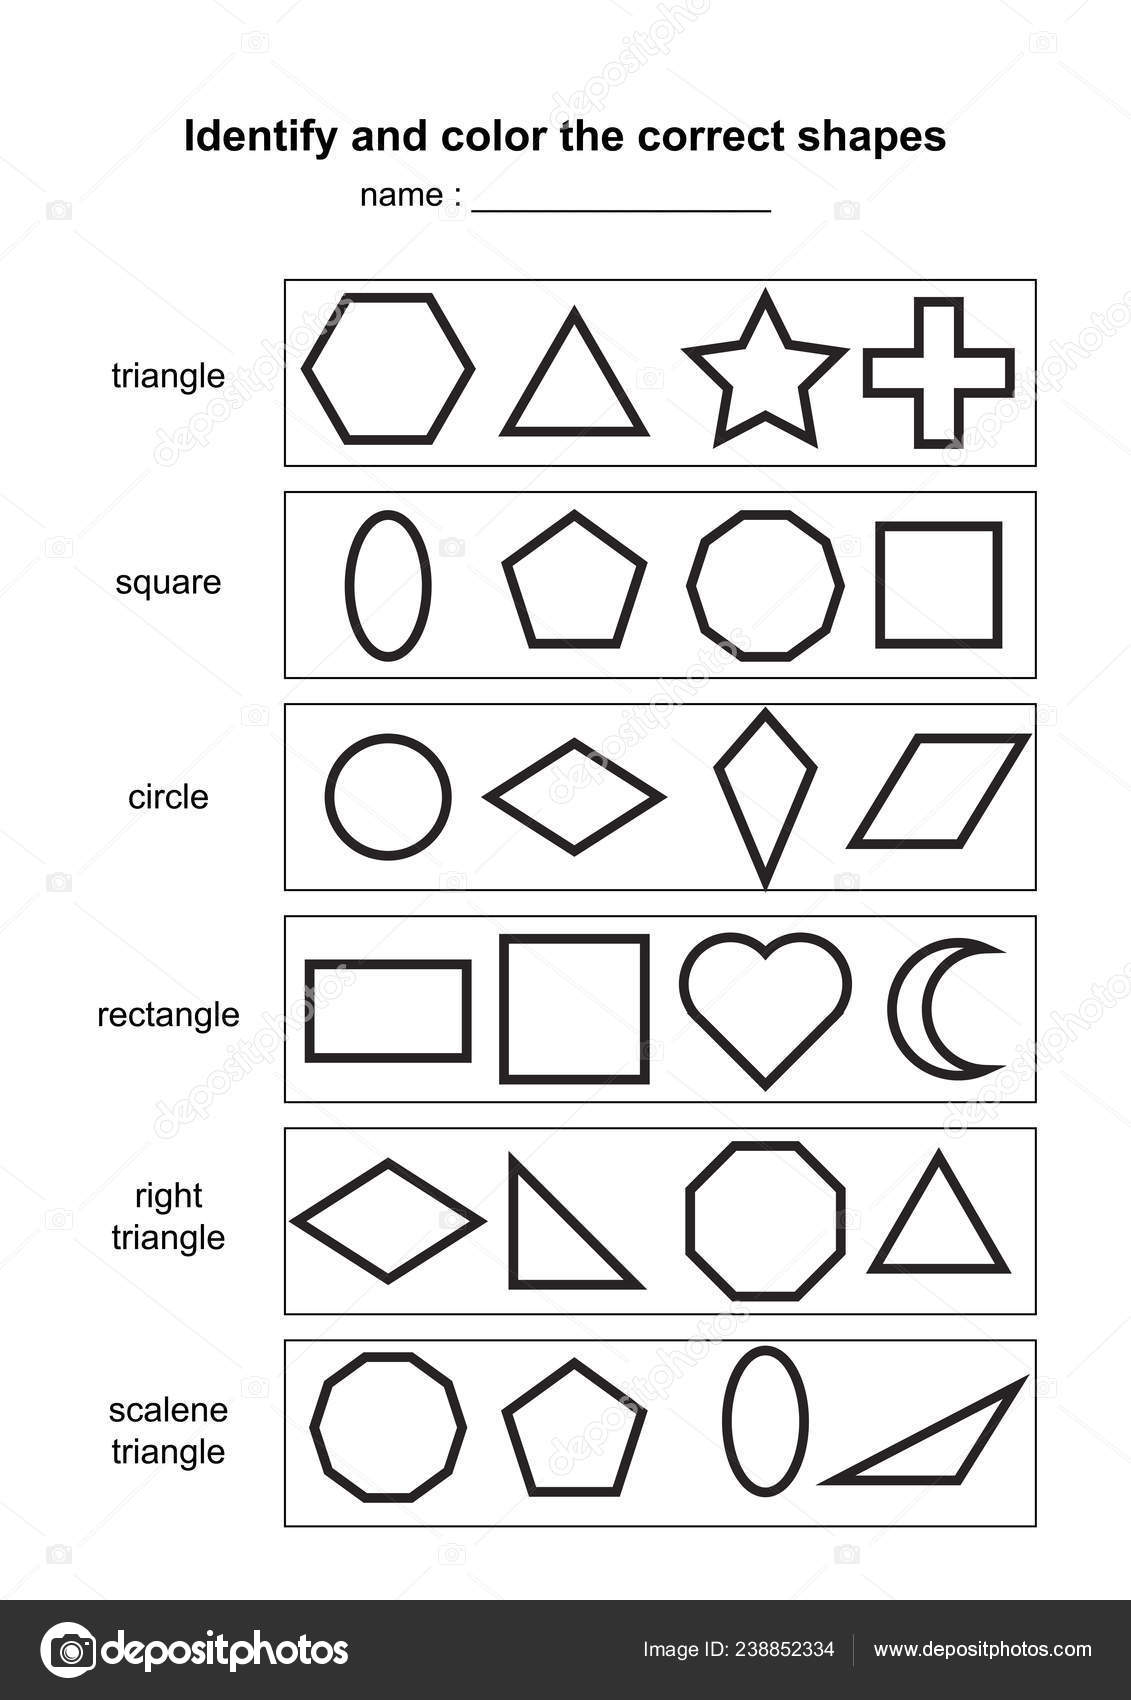 Identify Color Correct Shapes Educational Geometric Shapes